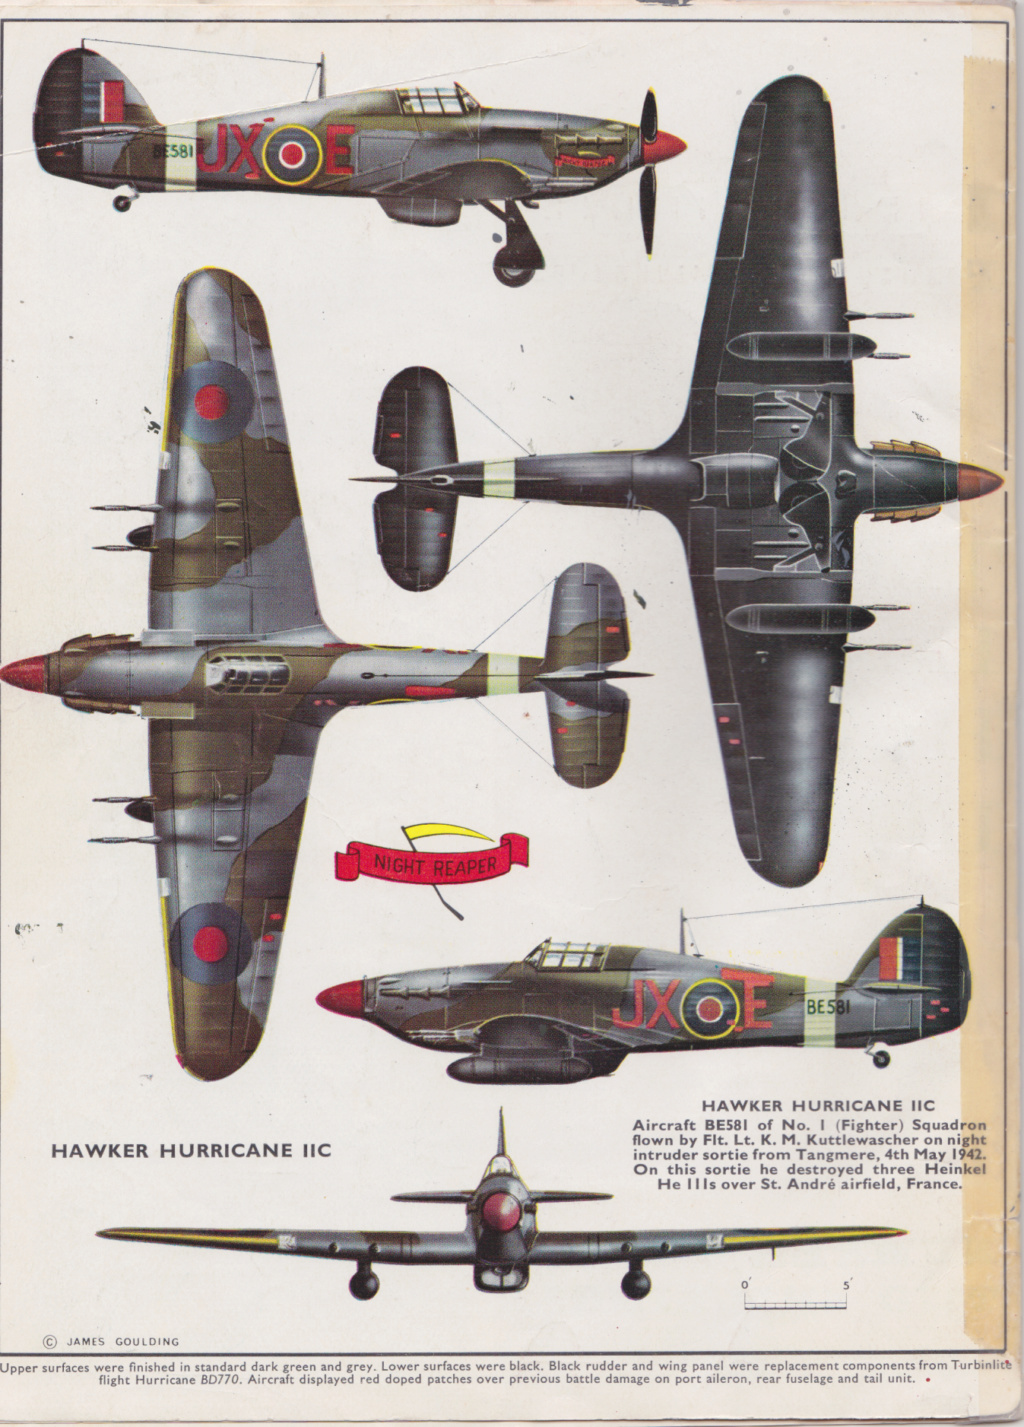 [mister Craft]Hawker Hurricane MK.IIC Czech LT Karel Kuttelwasher Jxe10